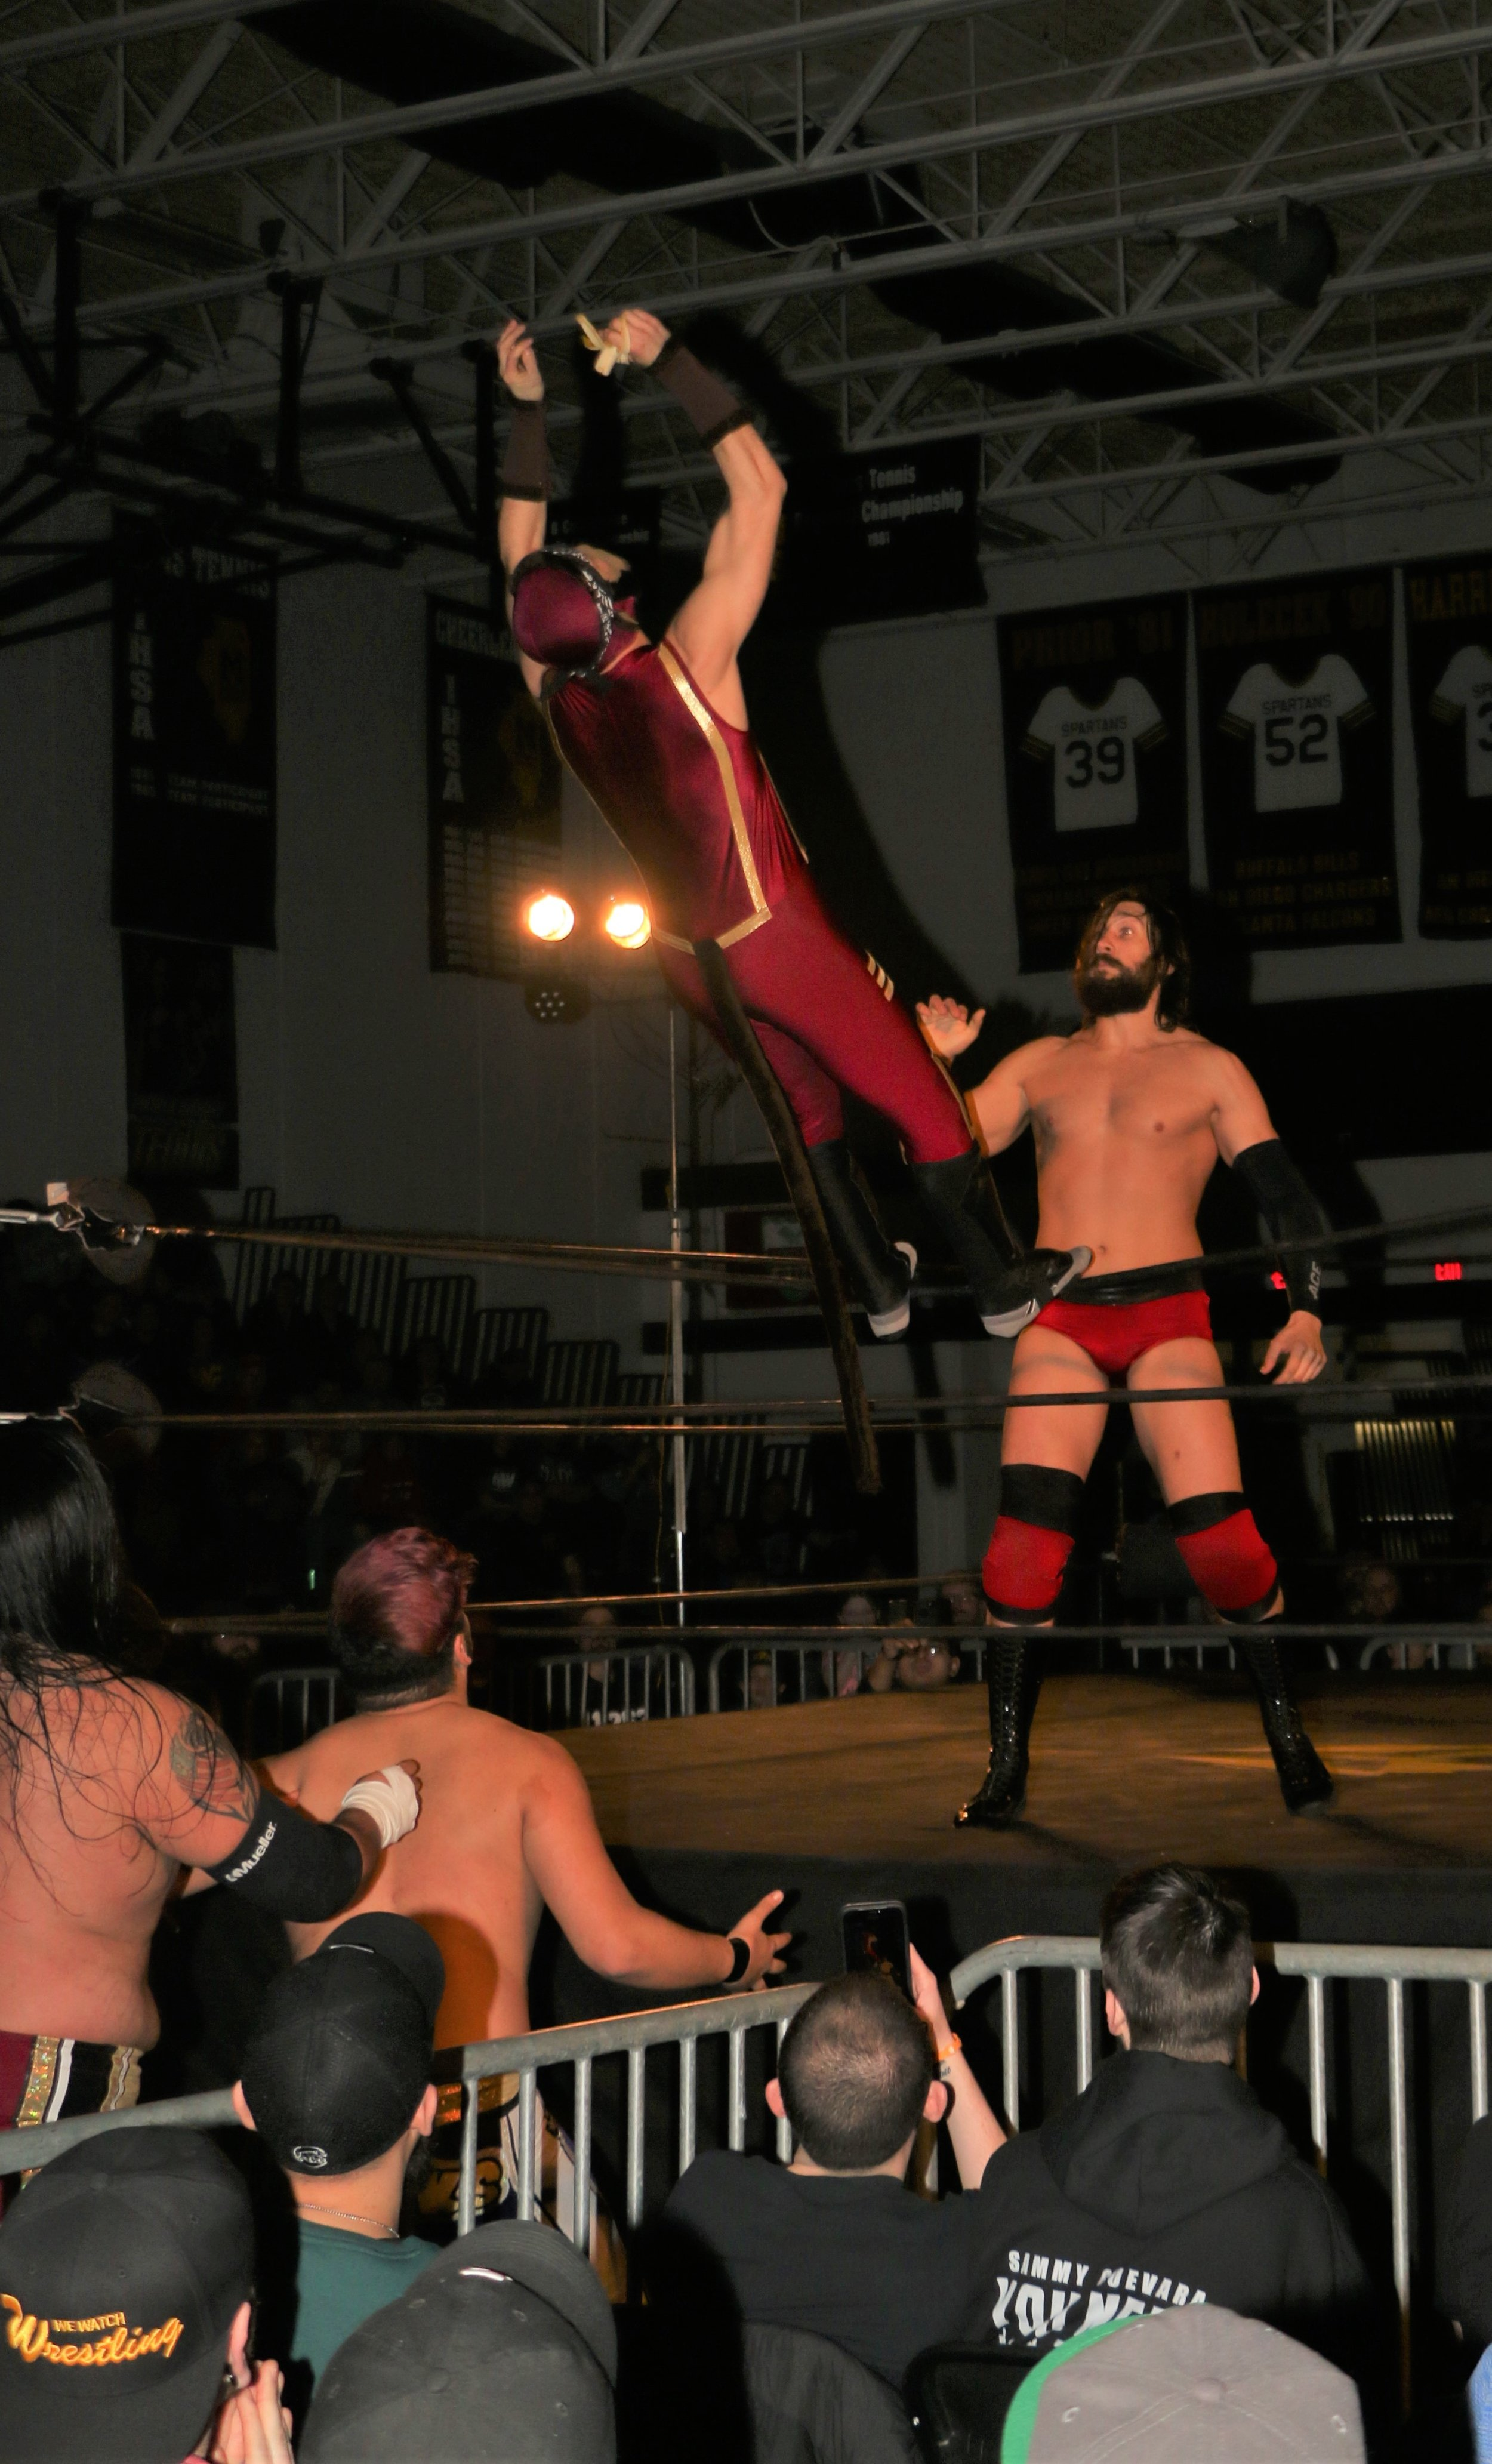 Space Monkey dives out of the ring onto his opponents during the three-way tag team match.